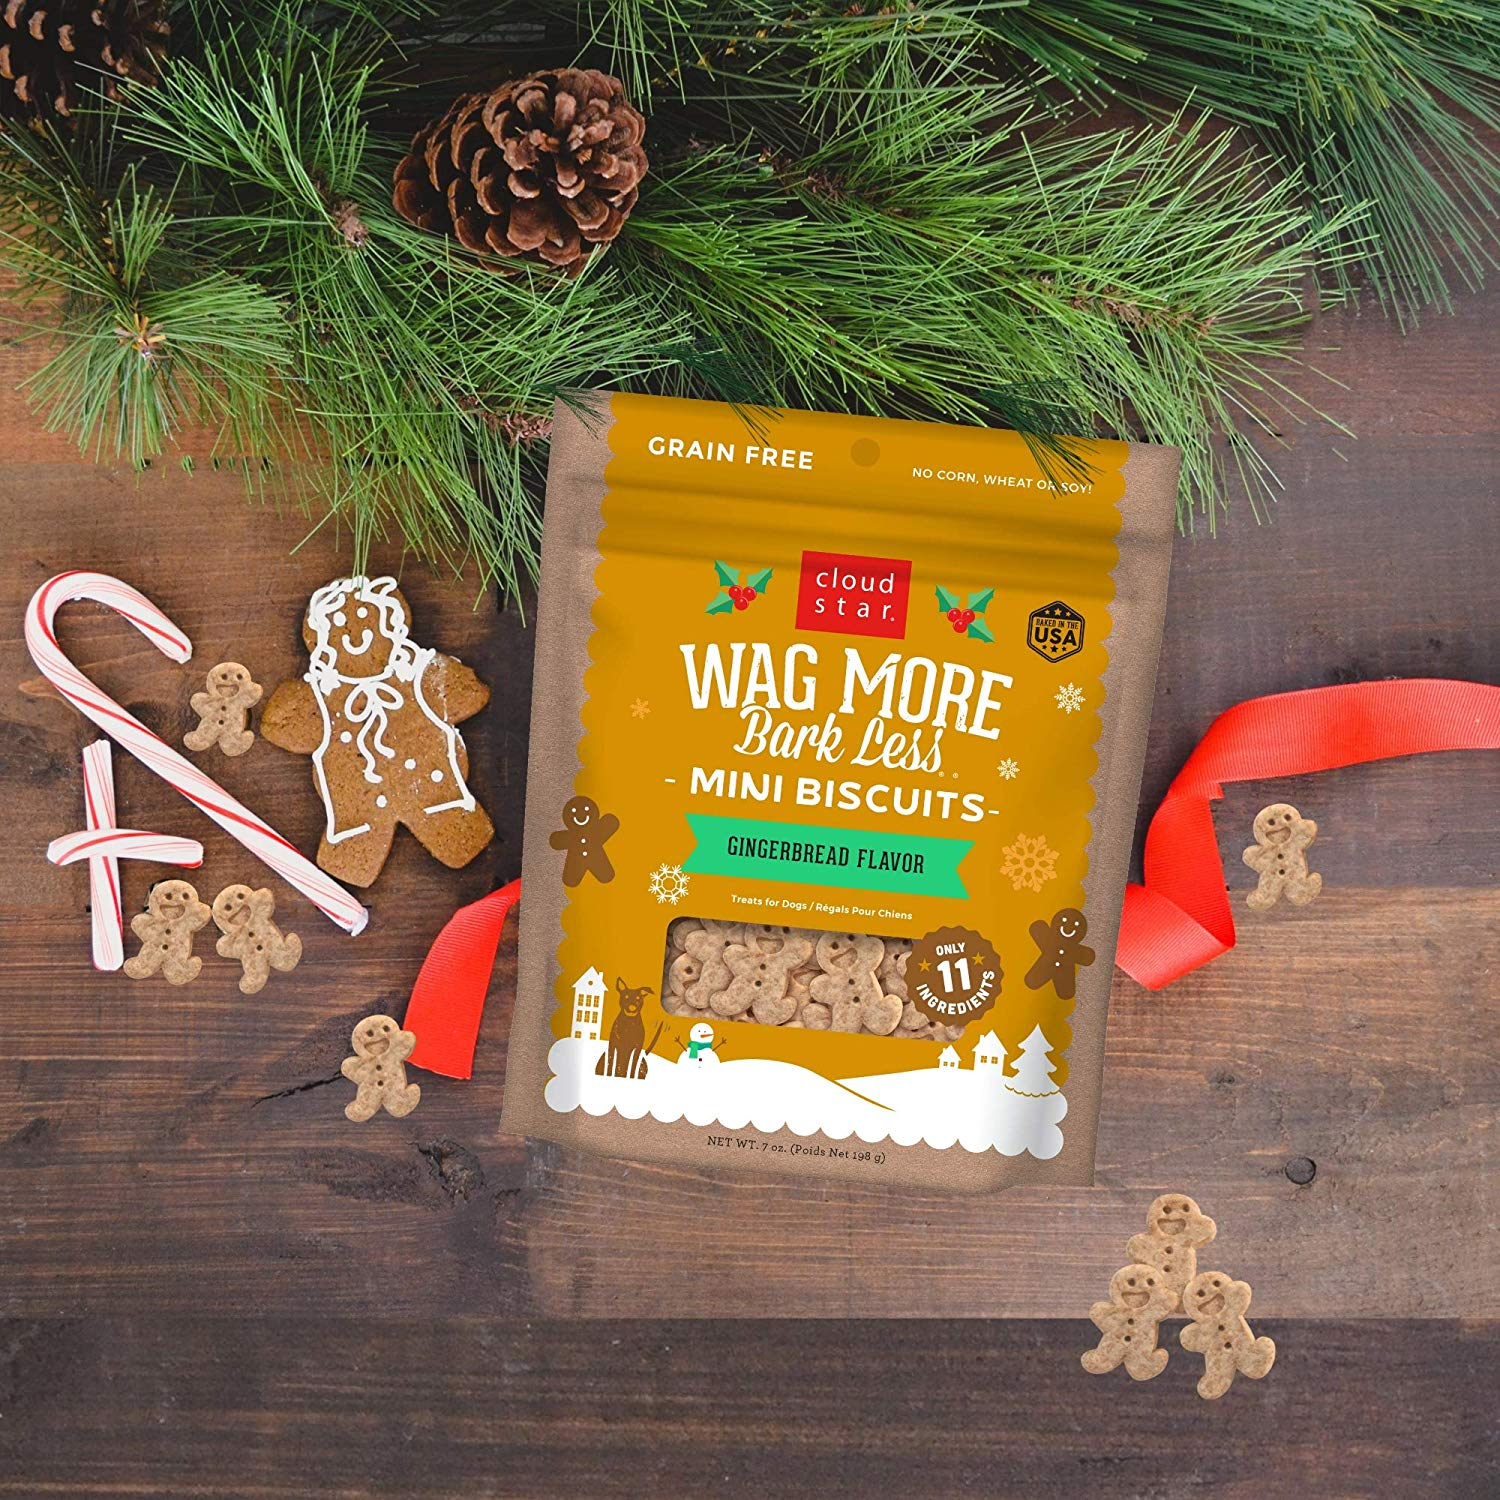 Wag More Bark Less Mini Biscuits Gingerbread. Treat your pup with a holiday Flavor so they know it's the season to wag more and bark less. Geat for both small and large dogs with fun cloud and Star shapes. No grains, corn, wheat, soy, artificial colors or flavors!